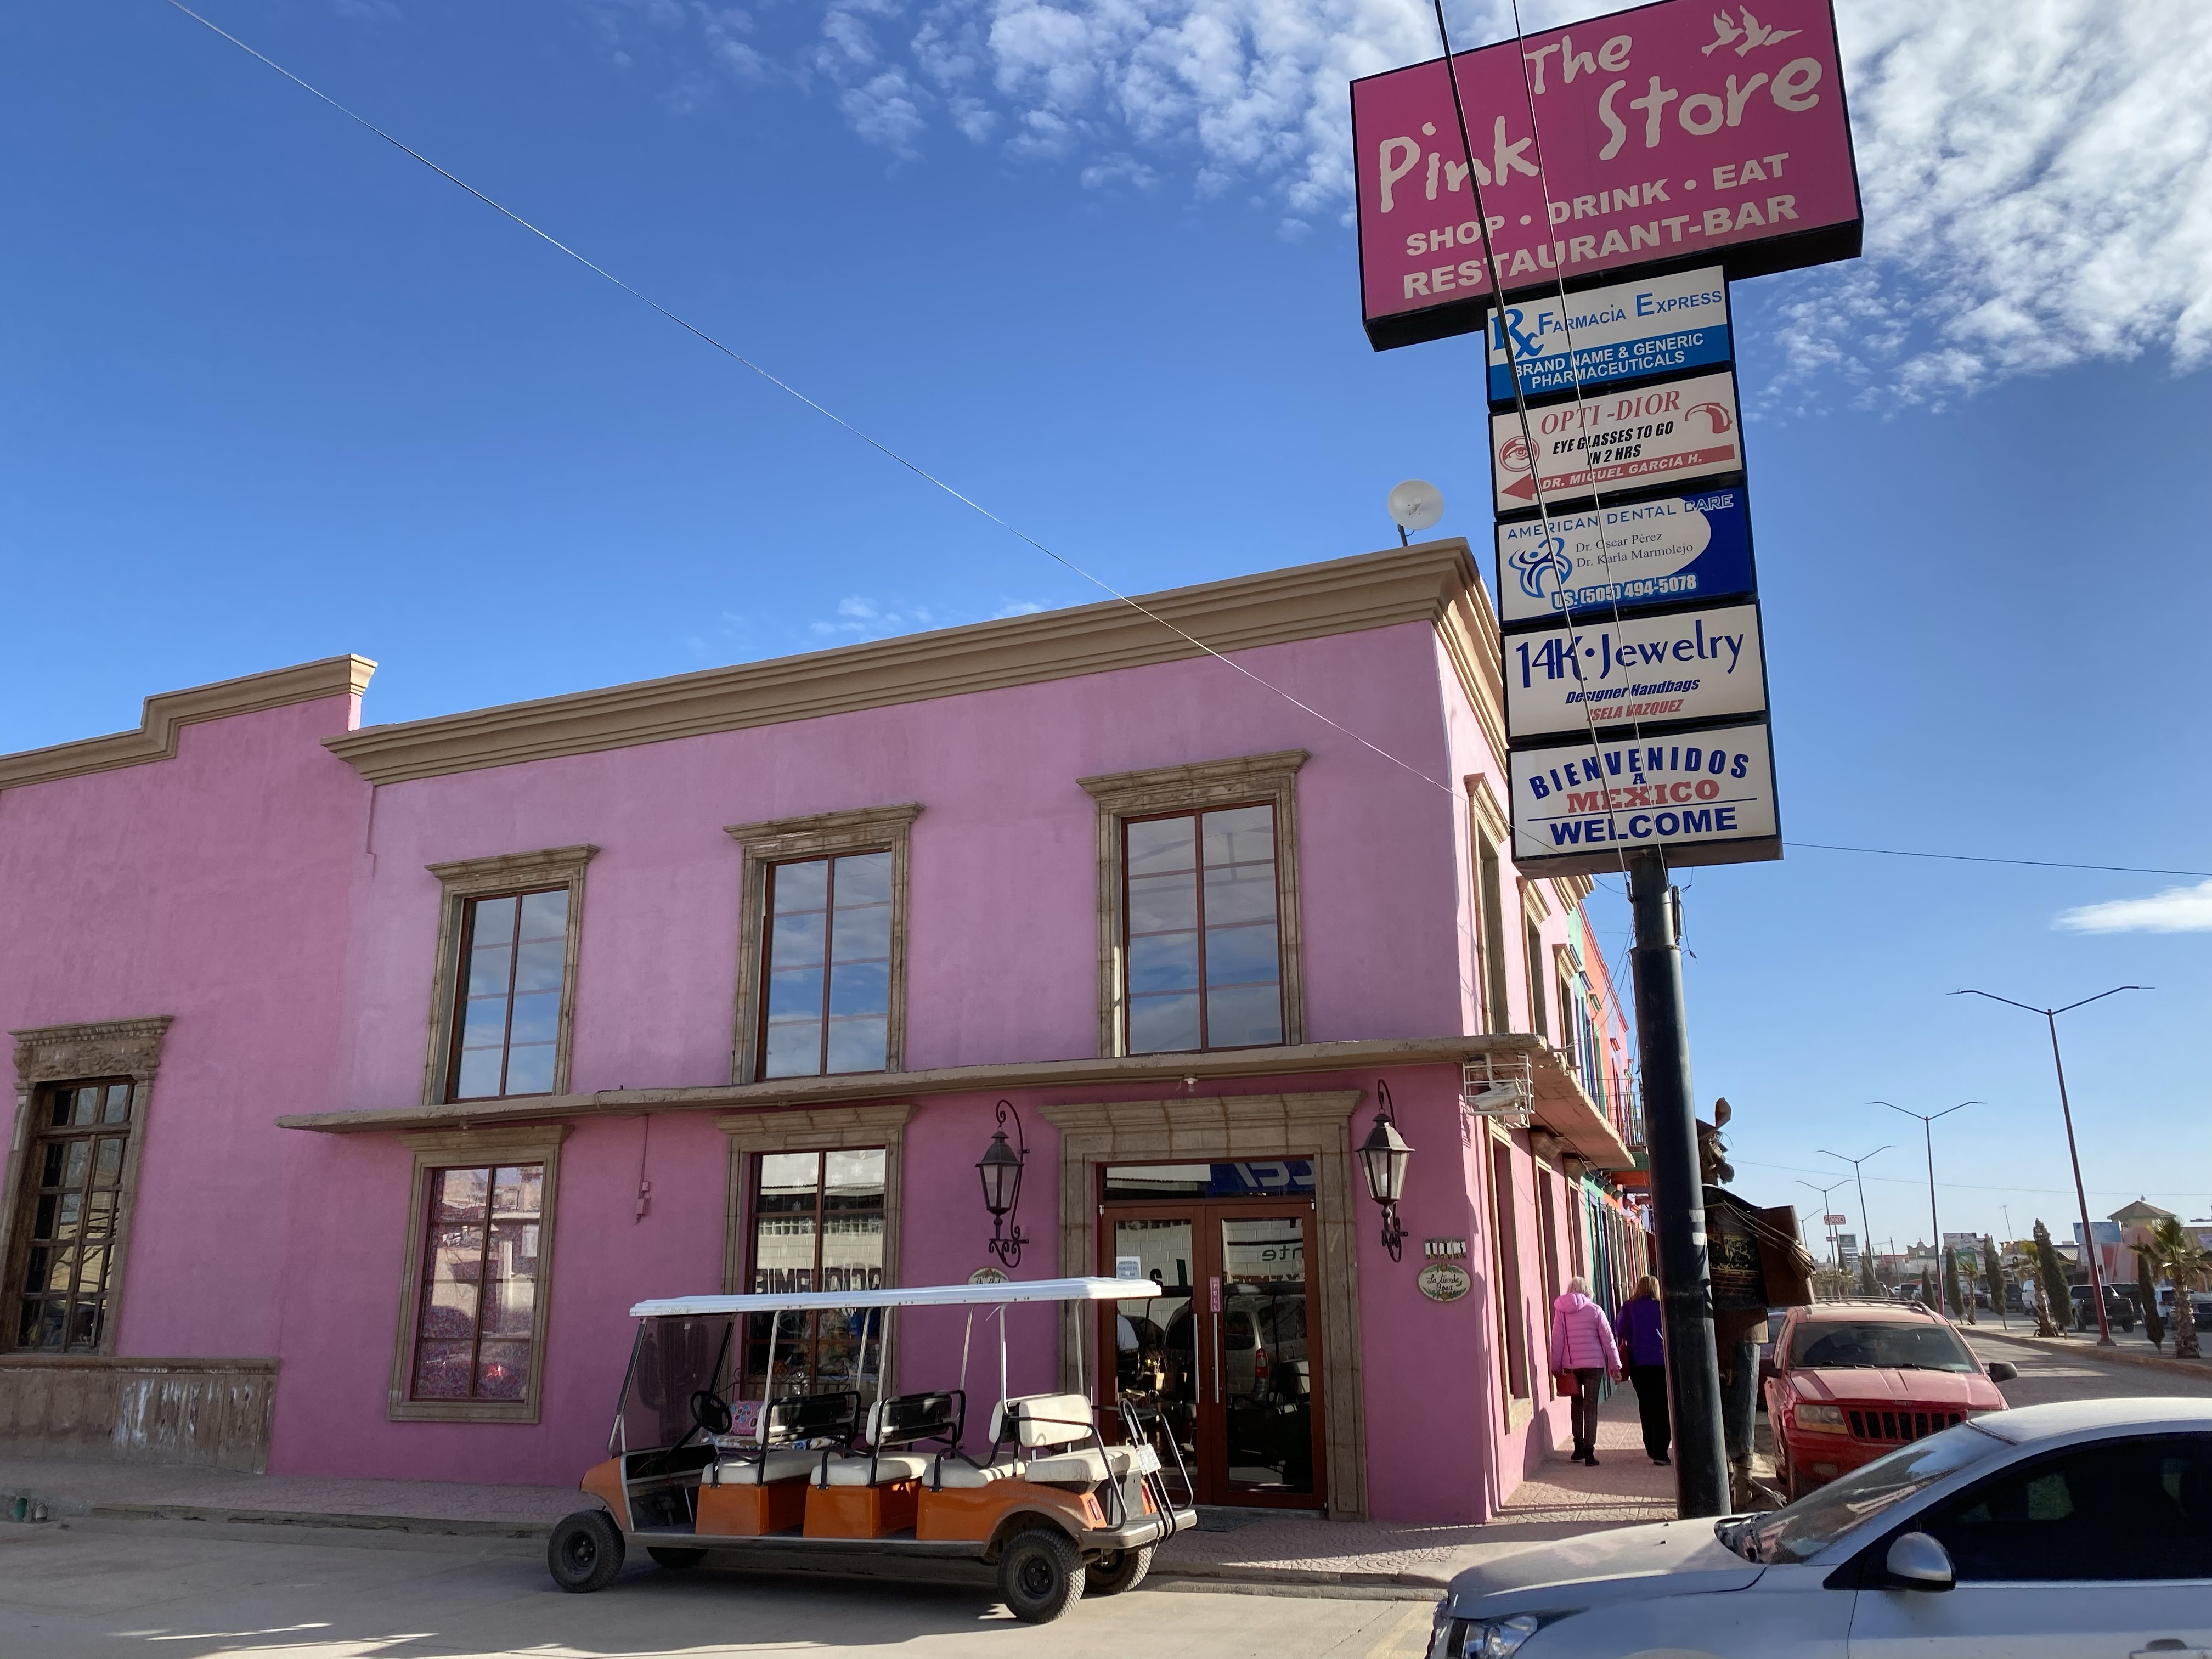 The Pink Store in Puerto Paloma serves both Mexican meals and souvenirs.